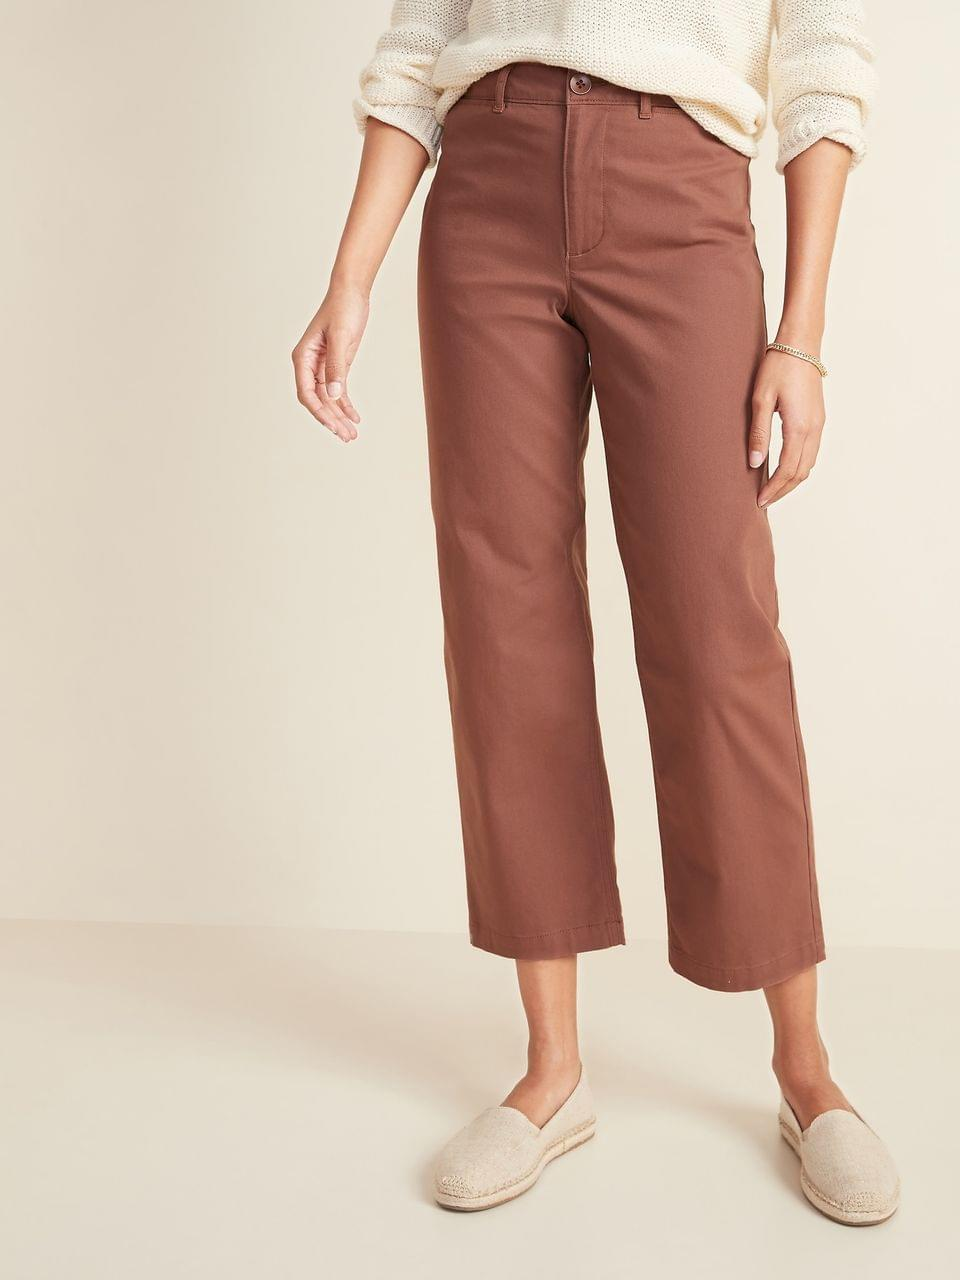 Women's High-Waisted Slim Wide-Leg Chinos for Women